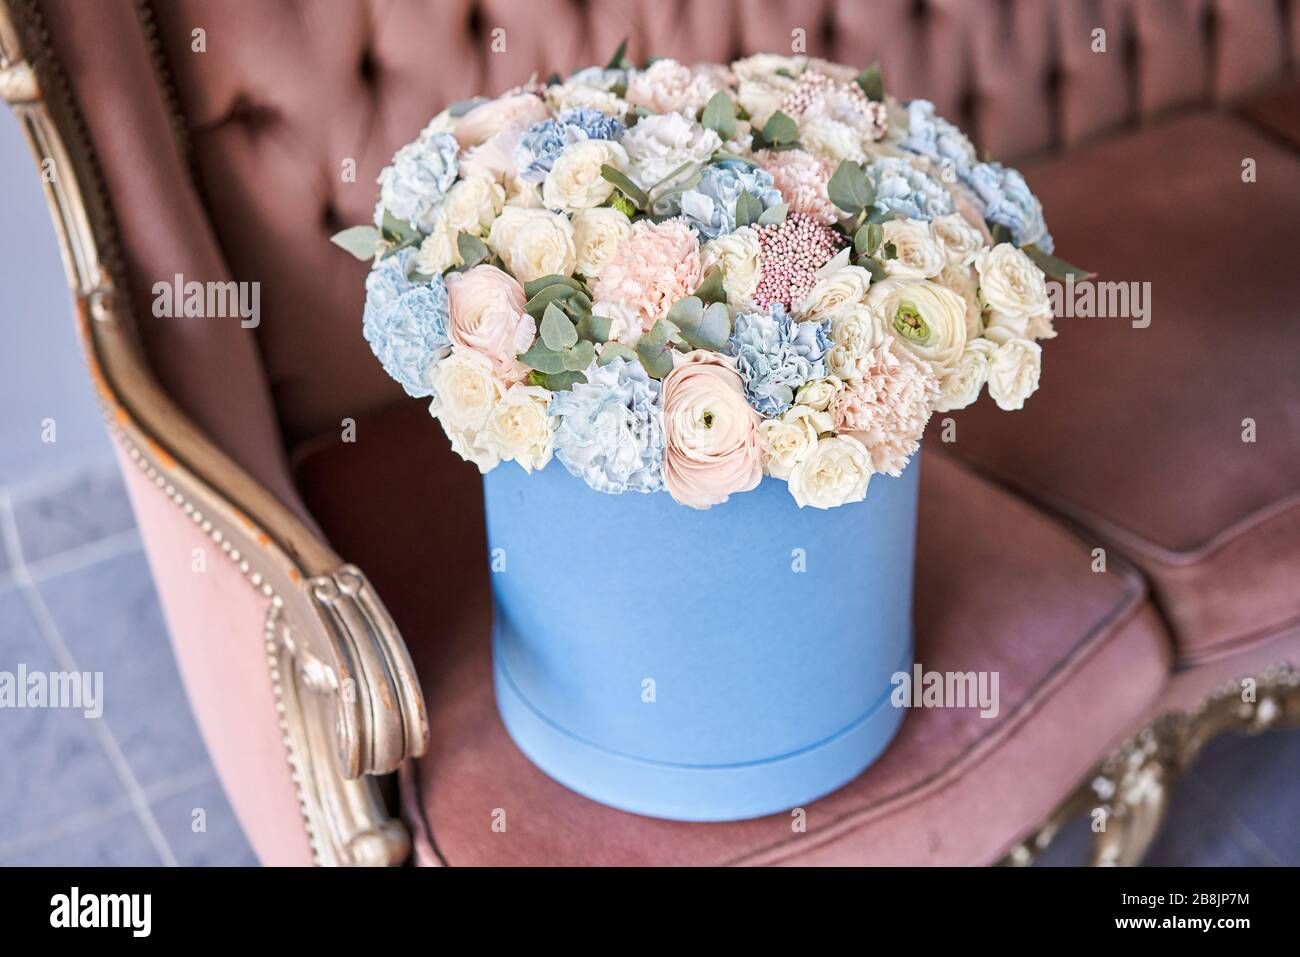 Bouquet Of Beautiful Mixed Flowers In Blue Box European Floral Shop Floral Bunch In Round Box Excellent Garden Flowers In The Arrangement The Stock Photo Alamy